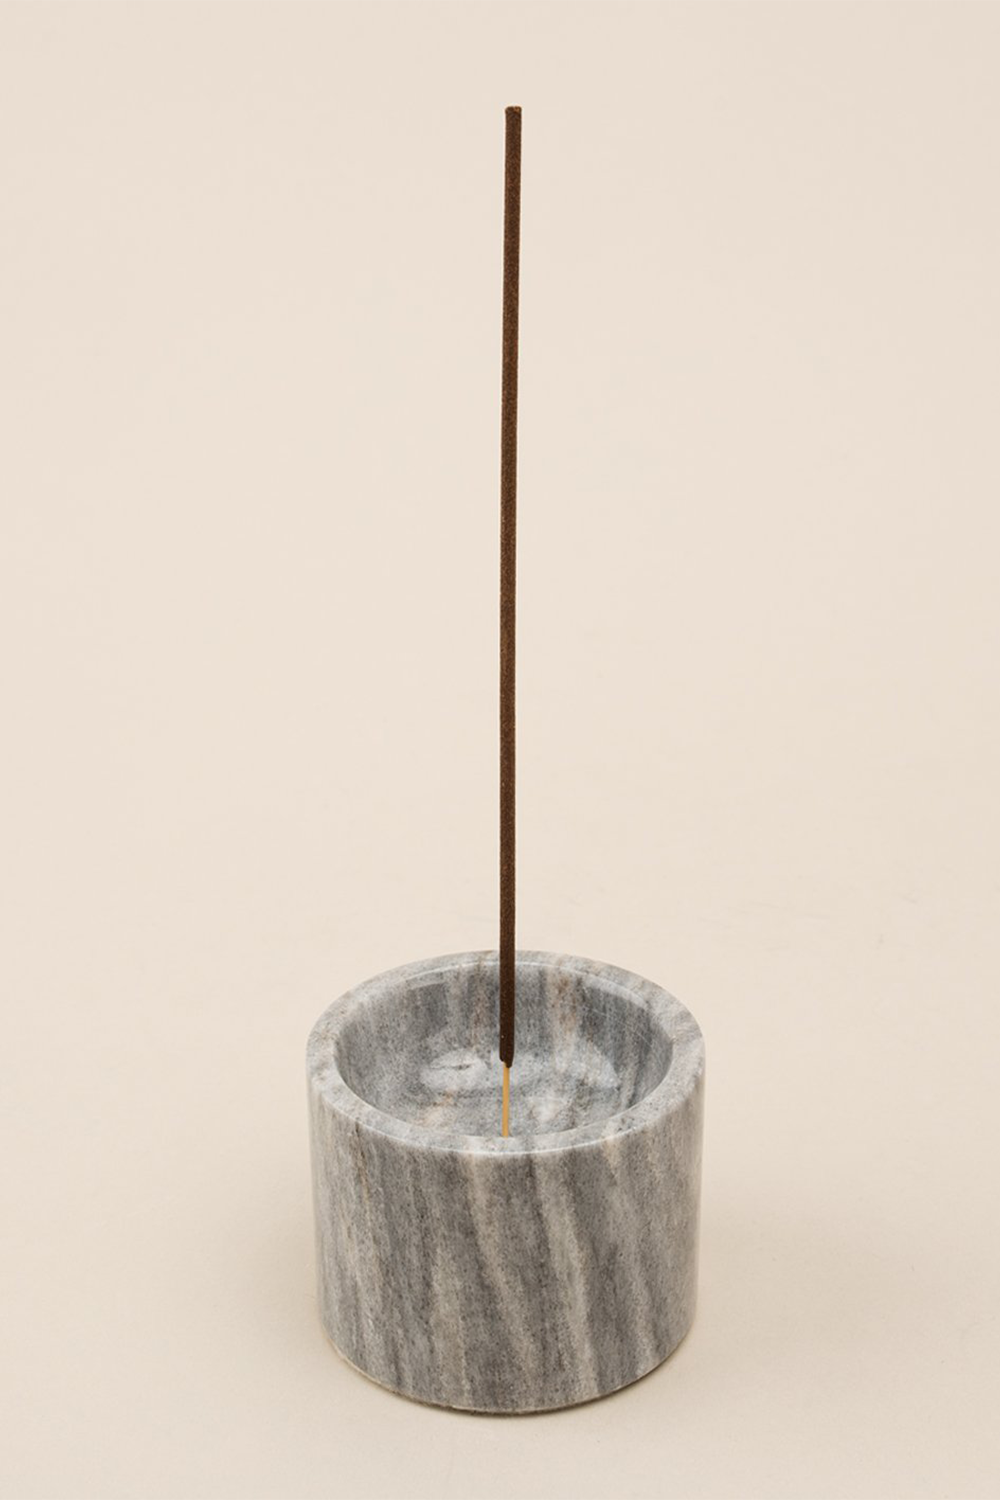 Rooted Incense Holder in gray